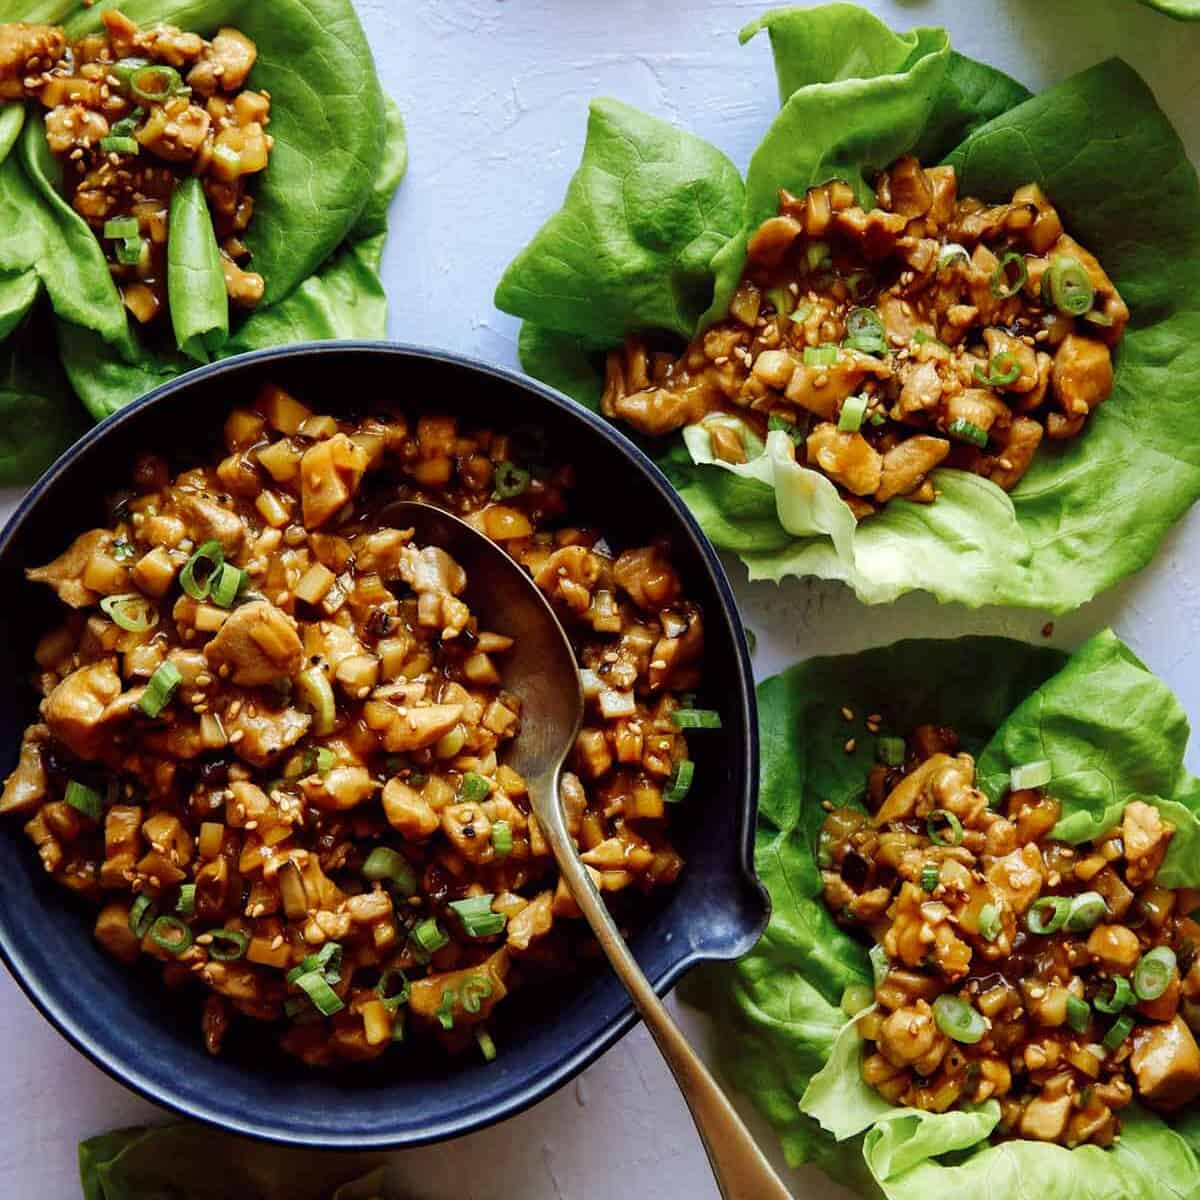 Chicken lettuce wraps with lettuce cups full of the chicken mixture, a healthy dinner idea.